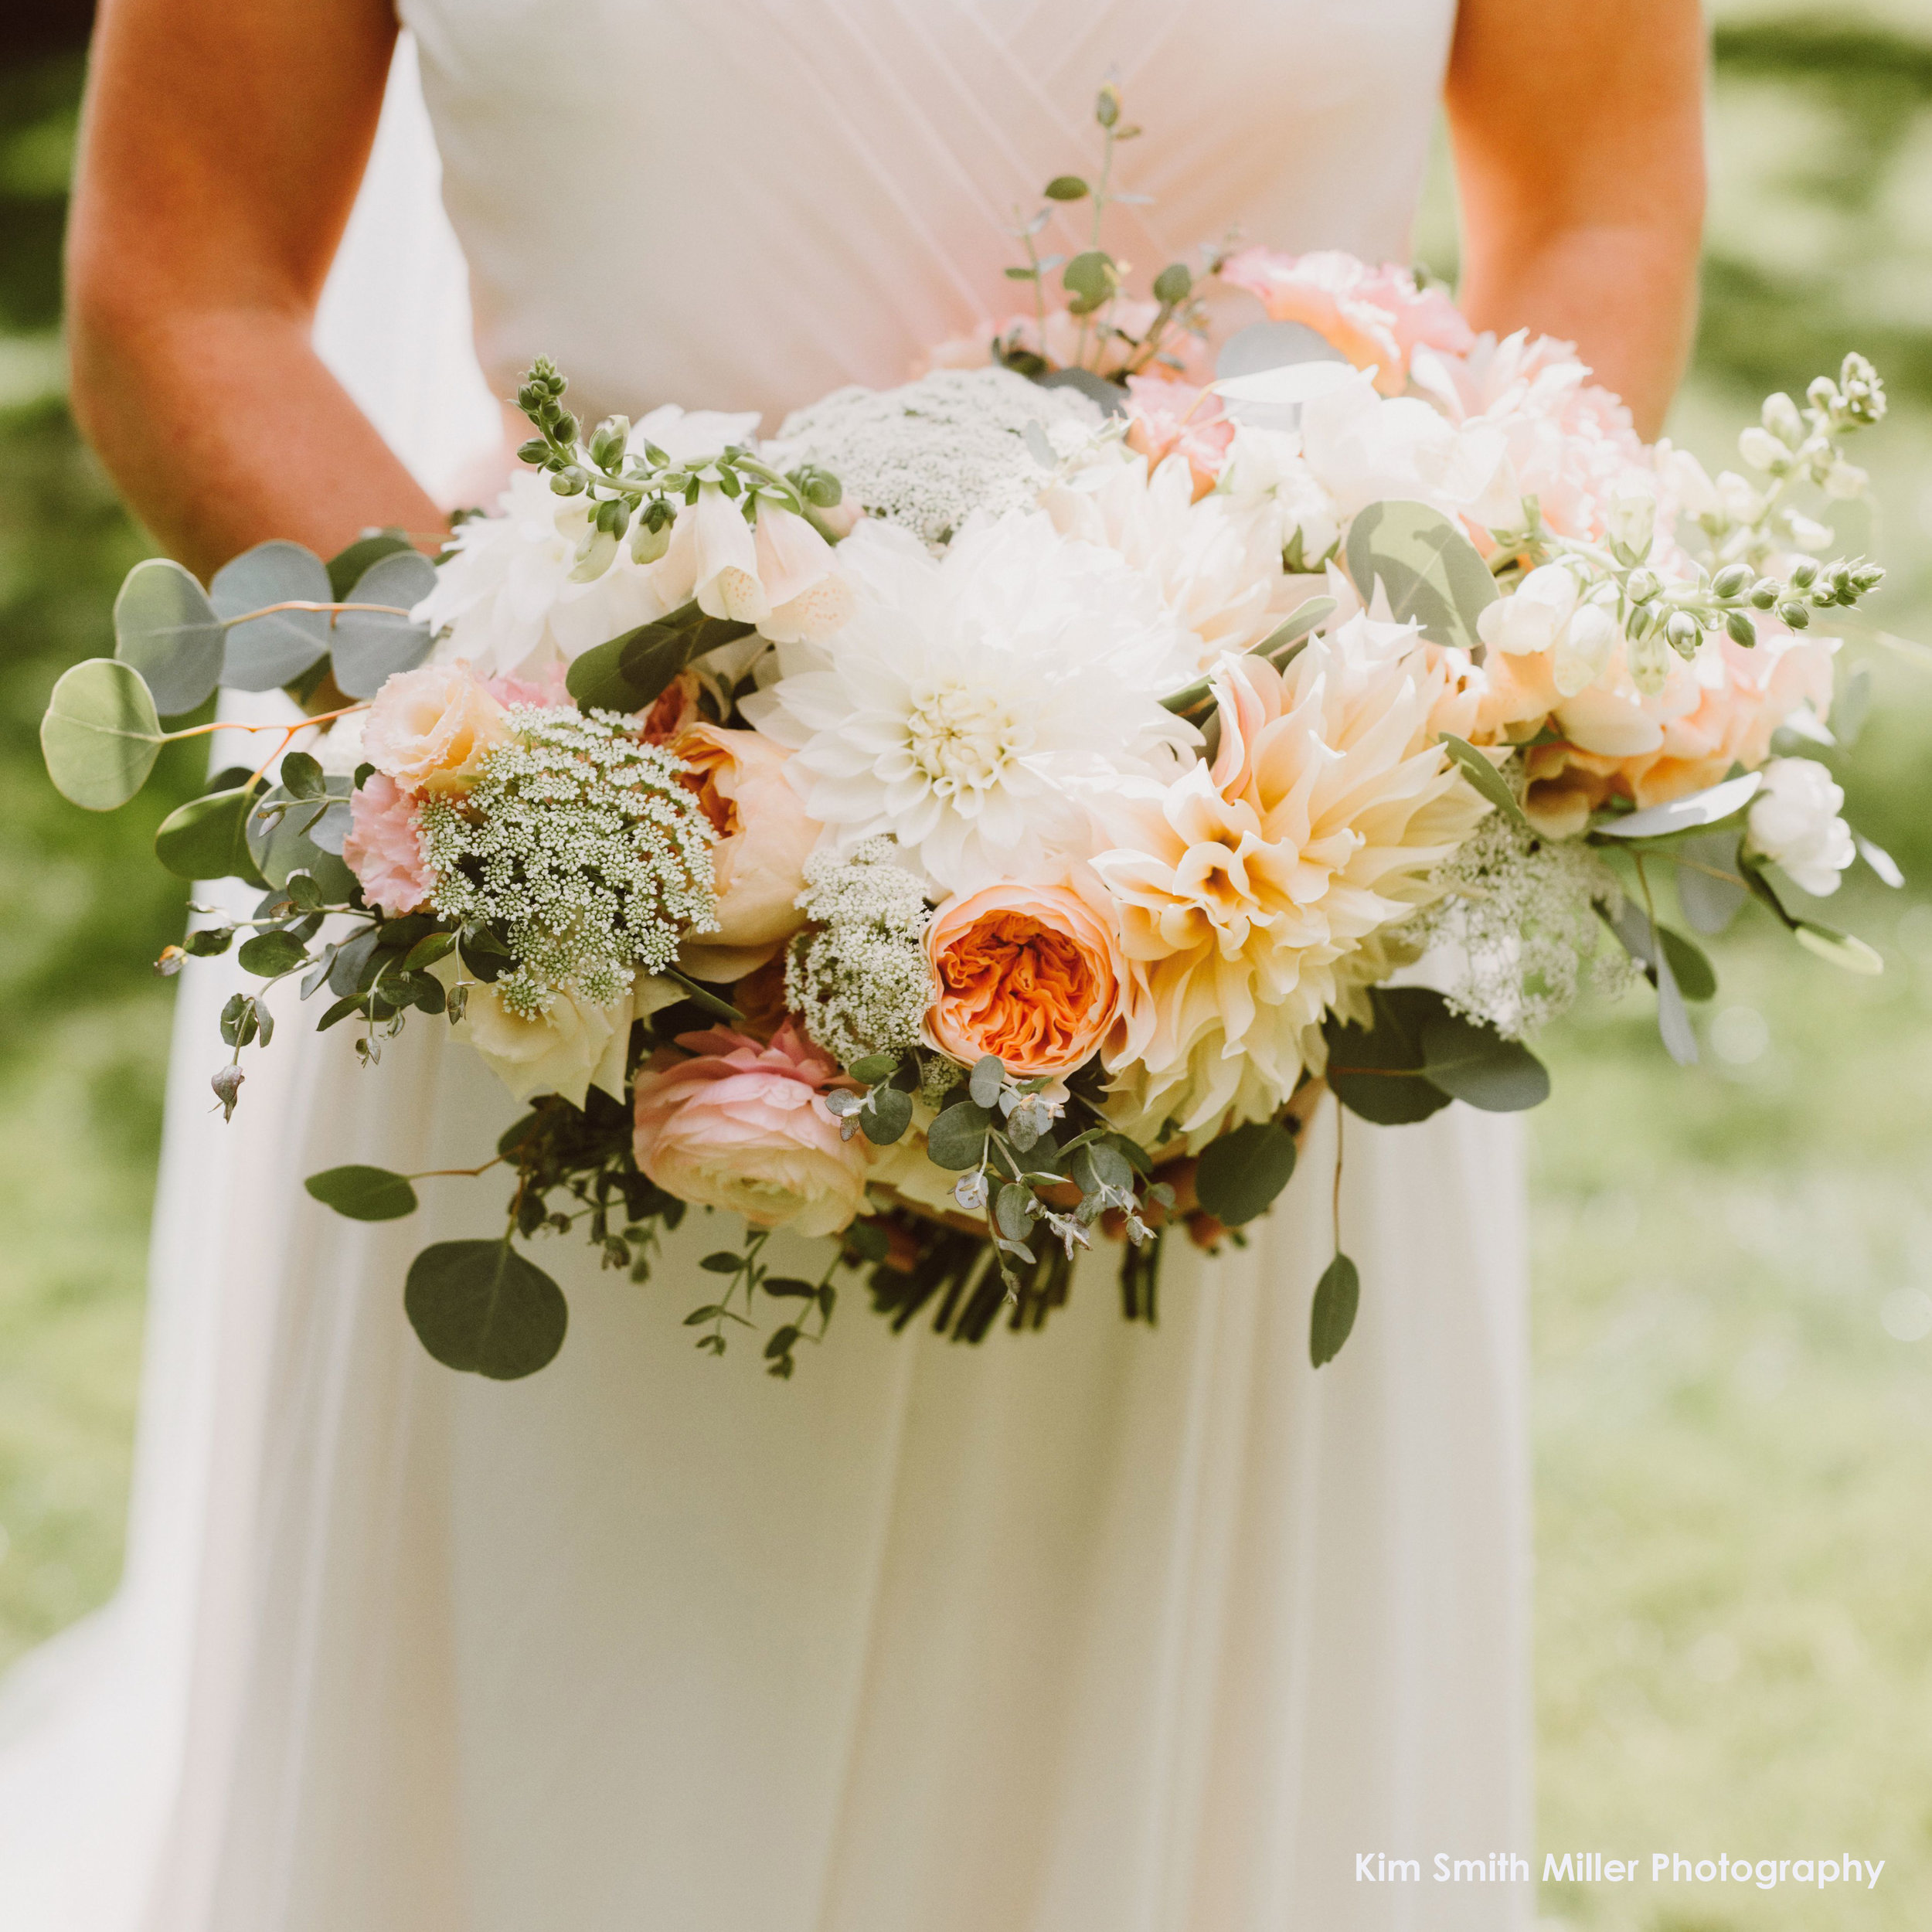 Wedding Florist Portland Hilary Horvath Flowers.jpg